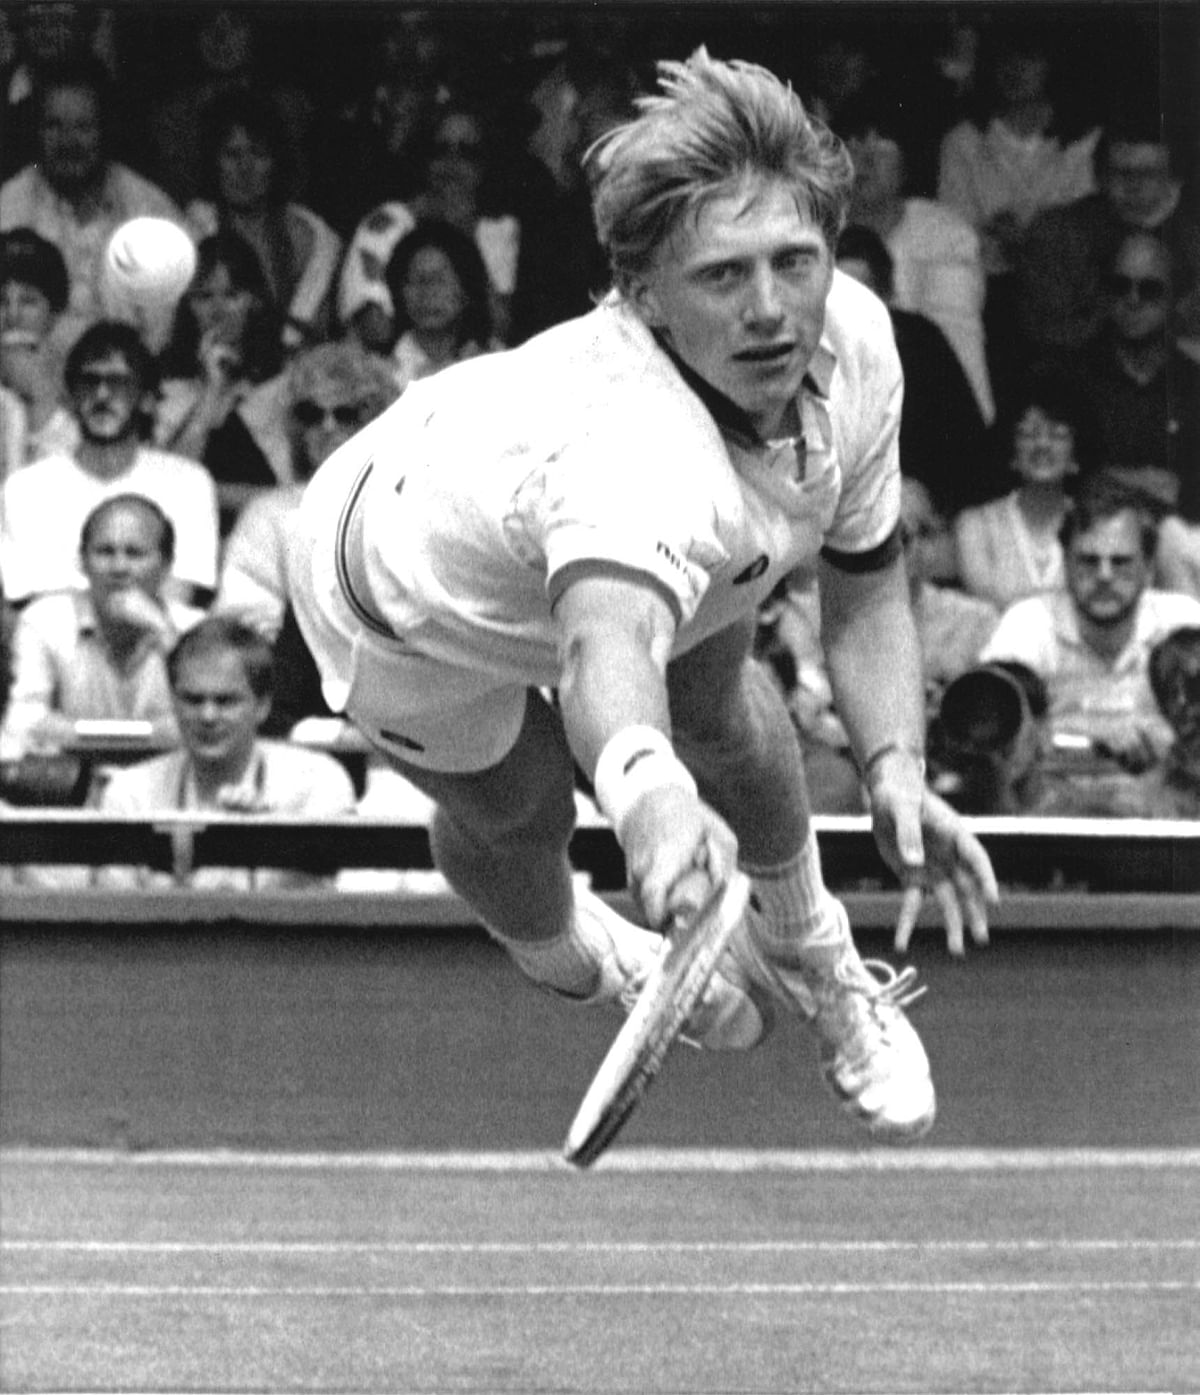 In this July 1, 1985 file photo, Boris Becker, of West Germany, dives to make a return from his opponent Joakim Nystrom, of Sweden, in the men's singles third round play at the All England Lawn Tennis Championships in Wimbledon. (Photo: AP)<a></a>